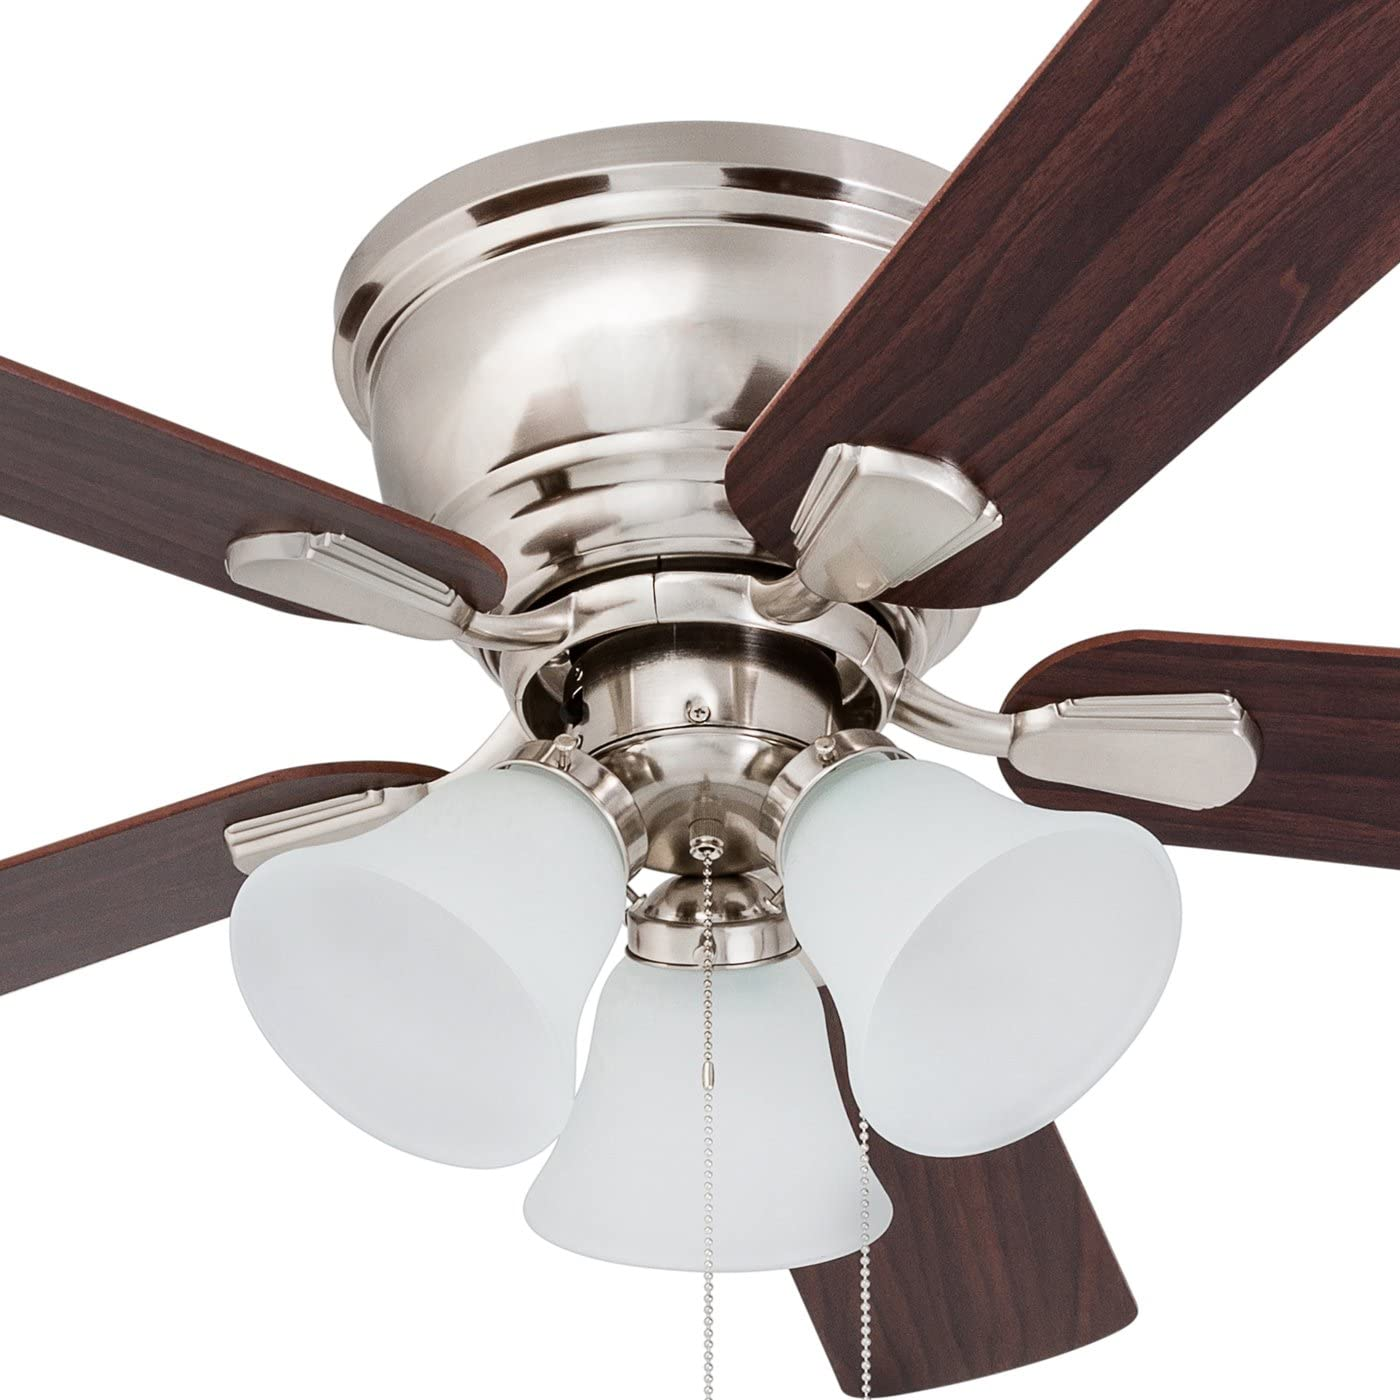 Prominence Home 80032-01 Saddle Ridge Low-Profile Hugger Ceiling Fan, LED 3-Light, Chocolate Maple Walnut Blades, 46 inches, Brushed Nickel